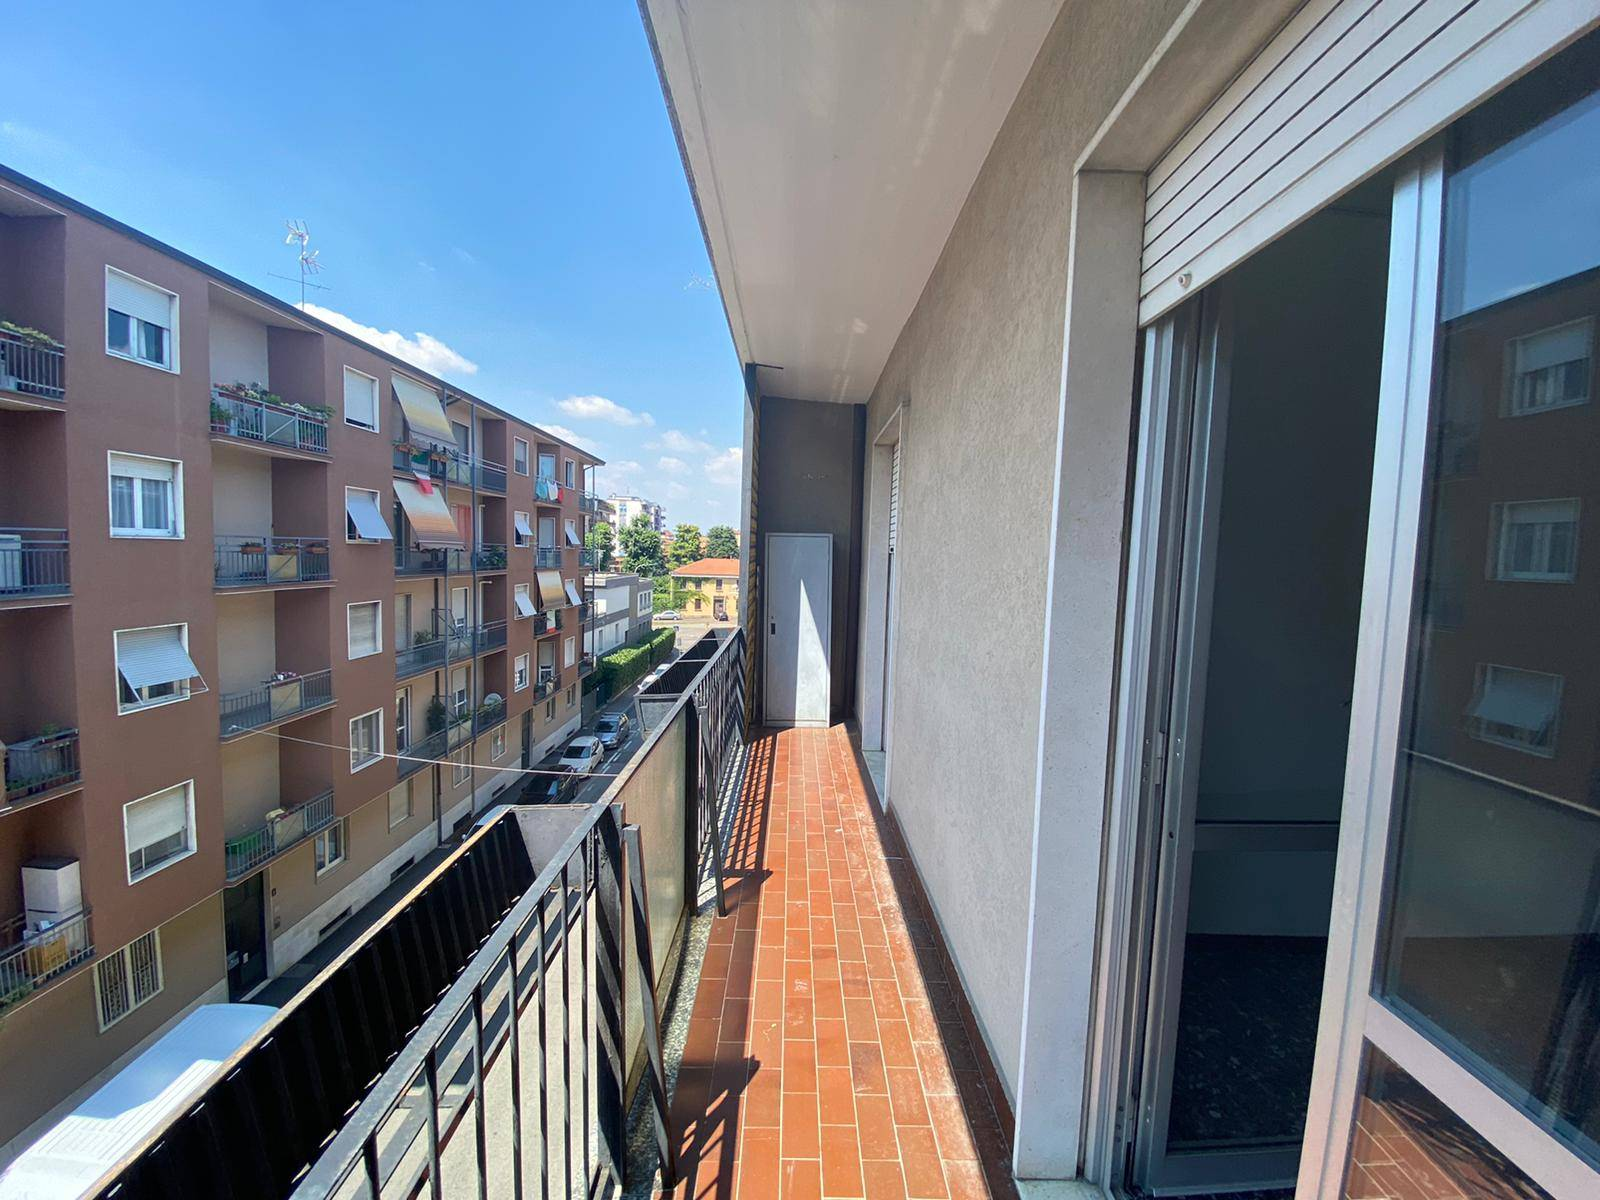 PIOLTELLO, Apartment for sale of 70 Sq. mt., Heating Centralized, Energetic class: E, Epi: 102,89 kwh/m2 year, placed at 3°, composed by: 2 Rooms, Separate kitchen, , 1 Bedroom, 1 Bathroom, Price: €